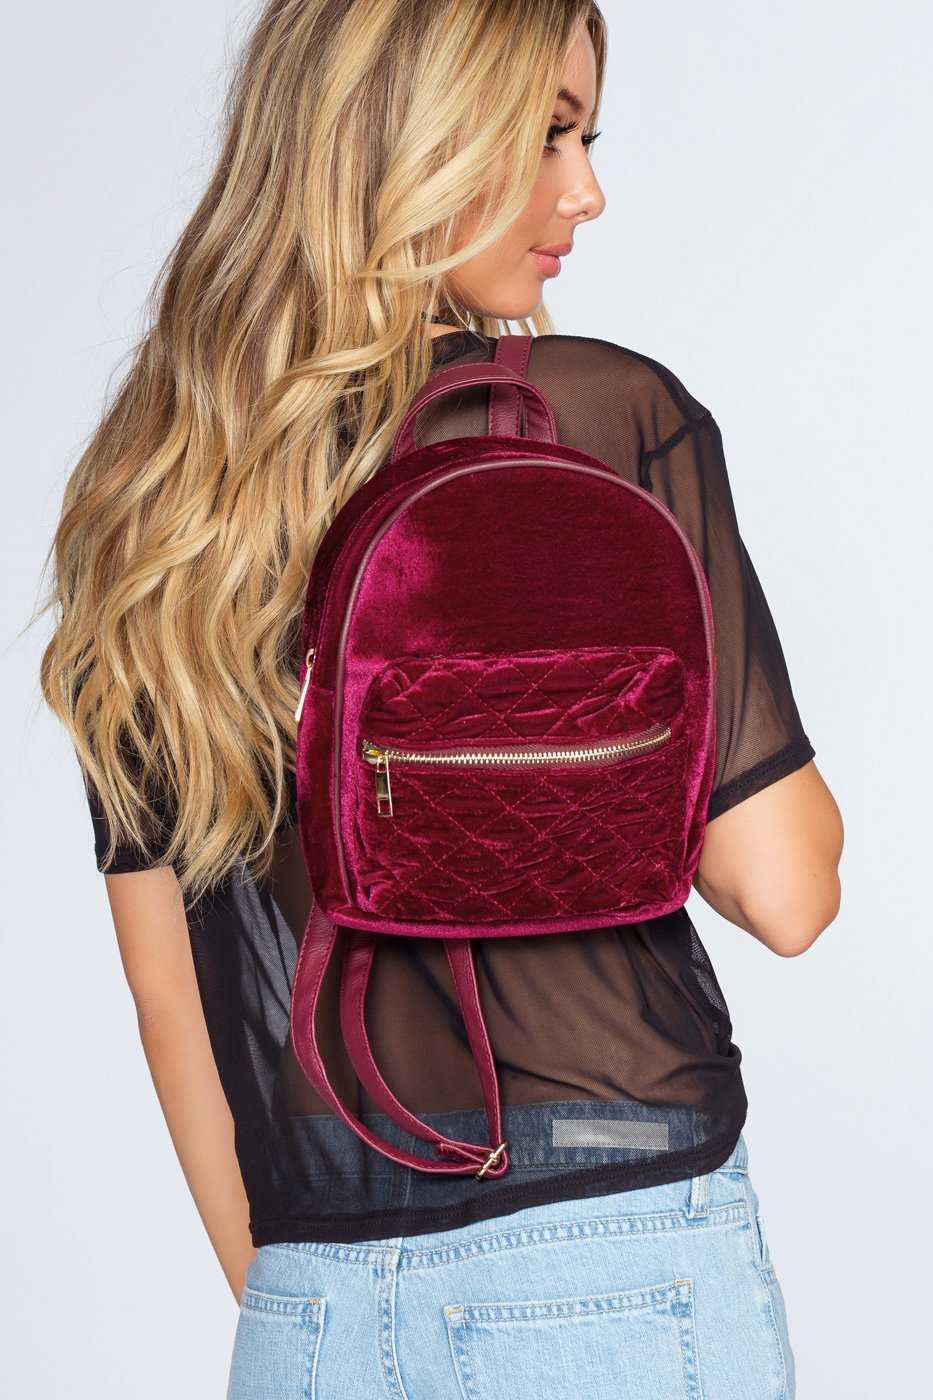 Accessories - Be You Quilted Backpack - Burgundy